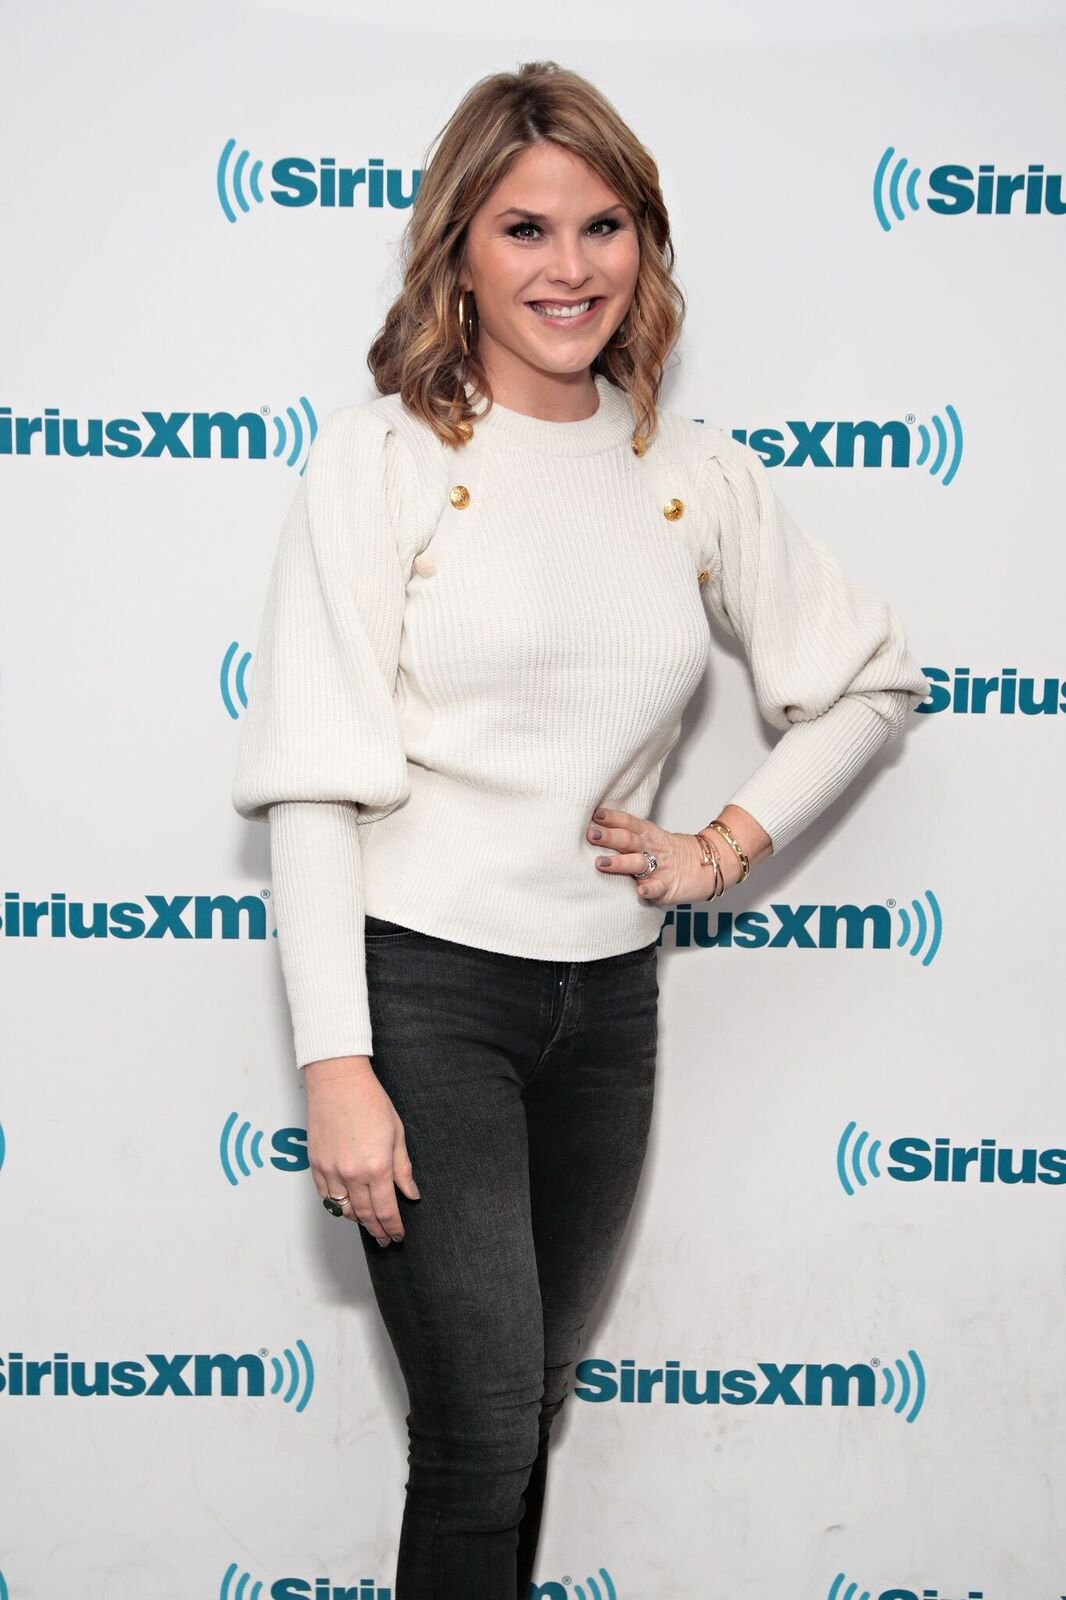 Jenna Bush Hager visits the SiriusXM Studios on November 15, 2017 in New York City | Photo: Getty Images